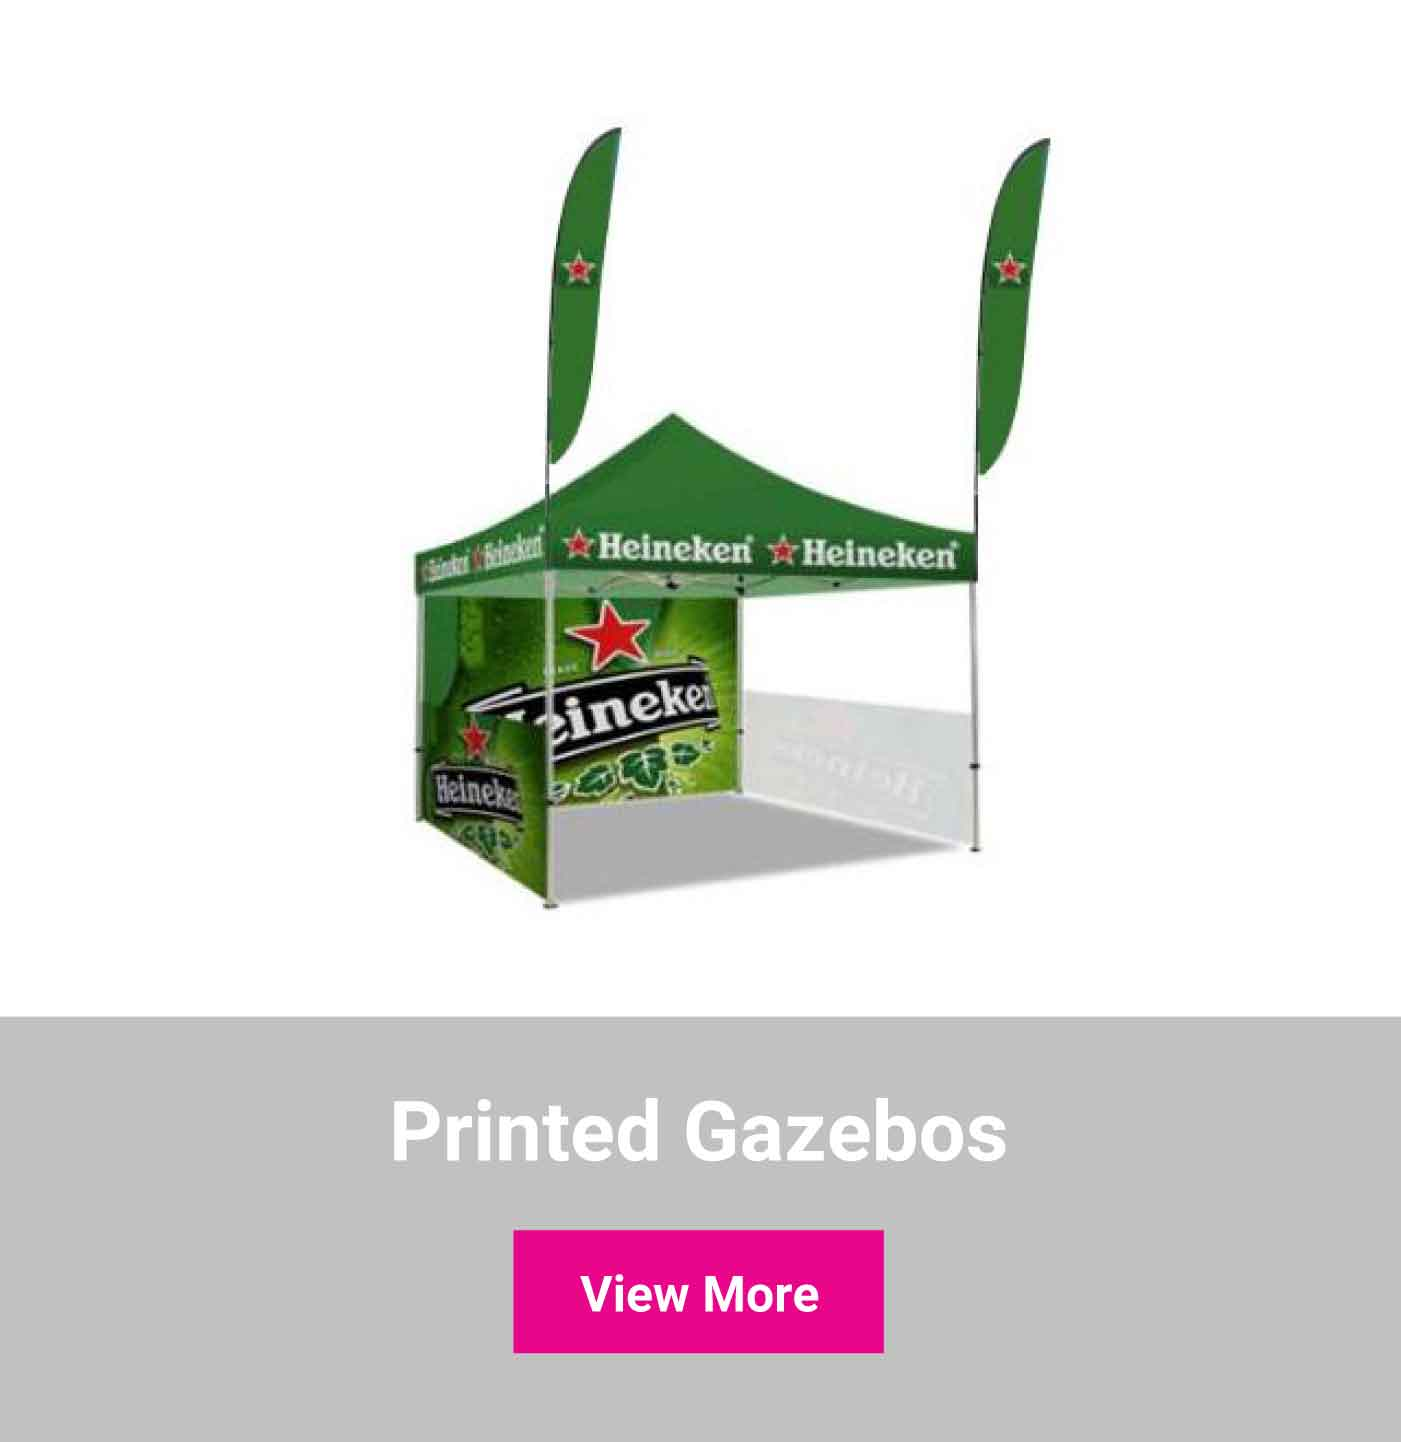 Shop printed gazebos